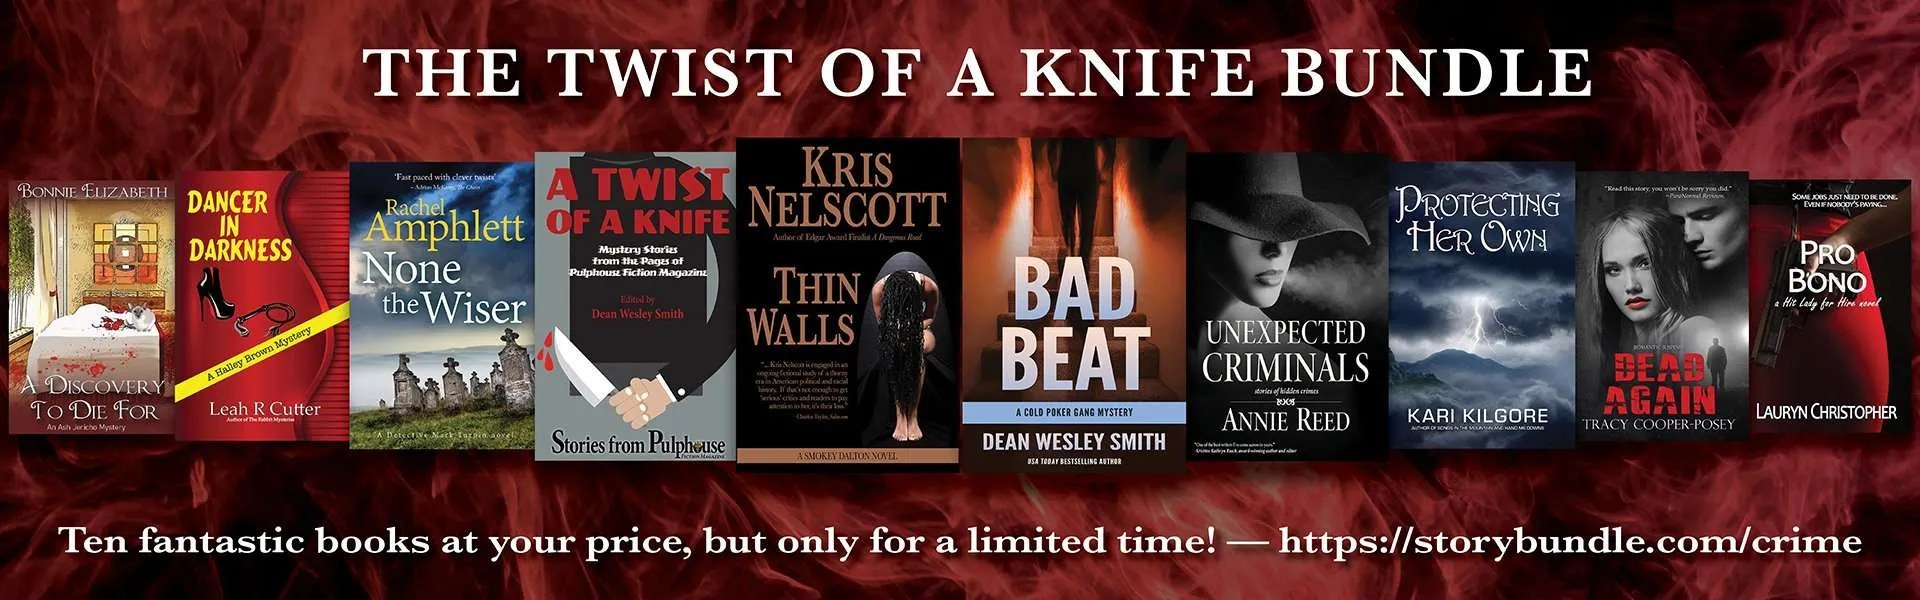 Twist of the Knife StoryBundle covers